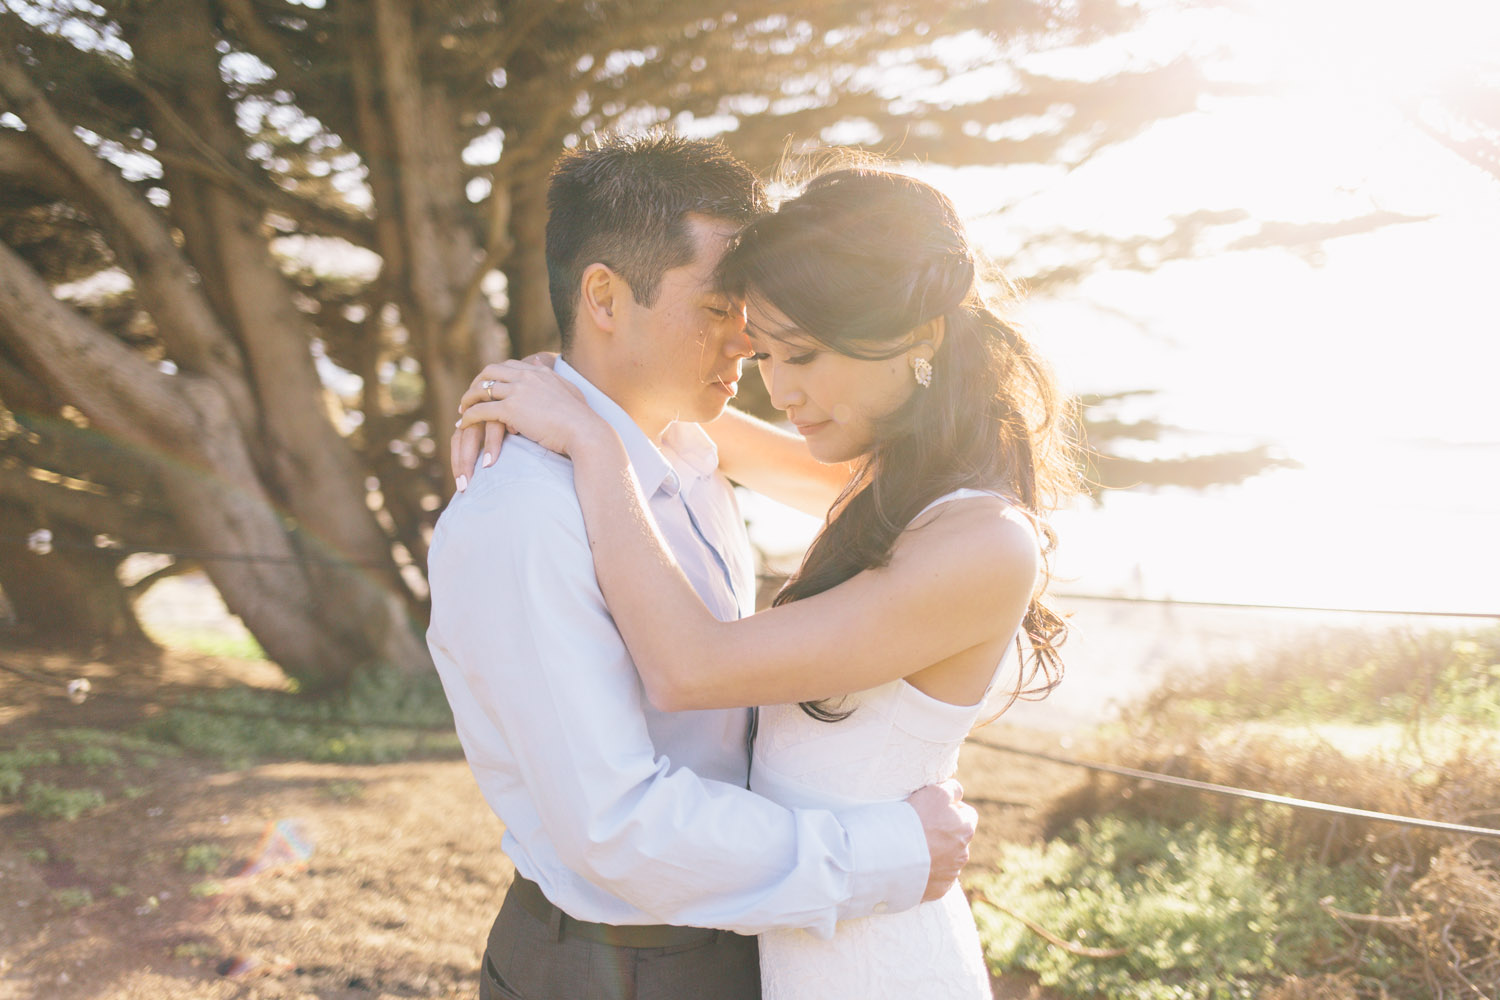 Engagement Session San Francisco Baker Beach Photos by Engagement and Wedding Photographer San Francisco JBJ Pictures-3.jpg